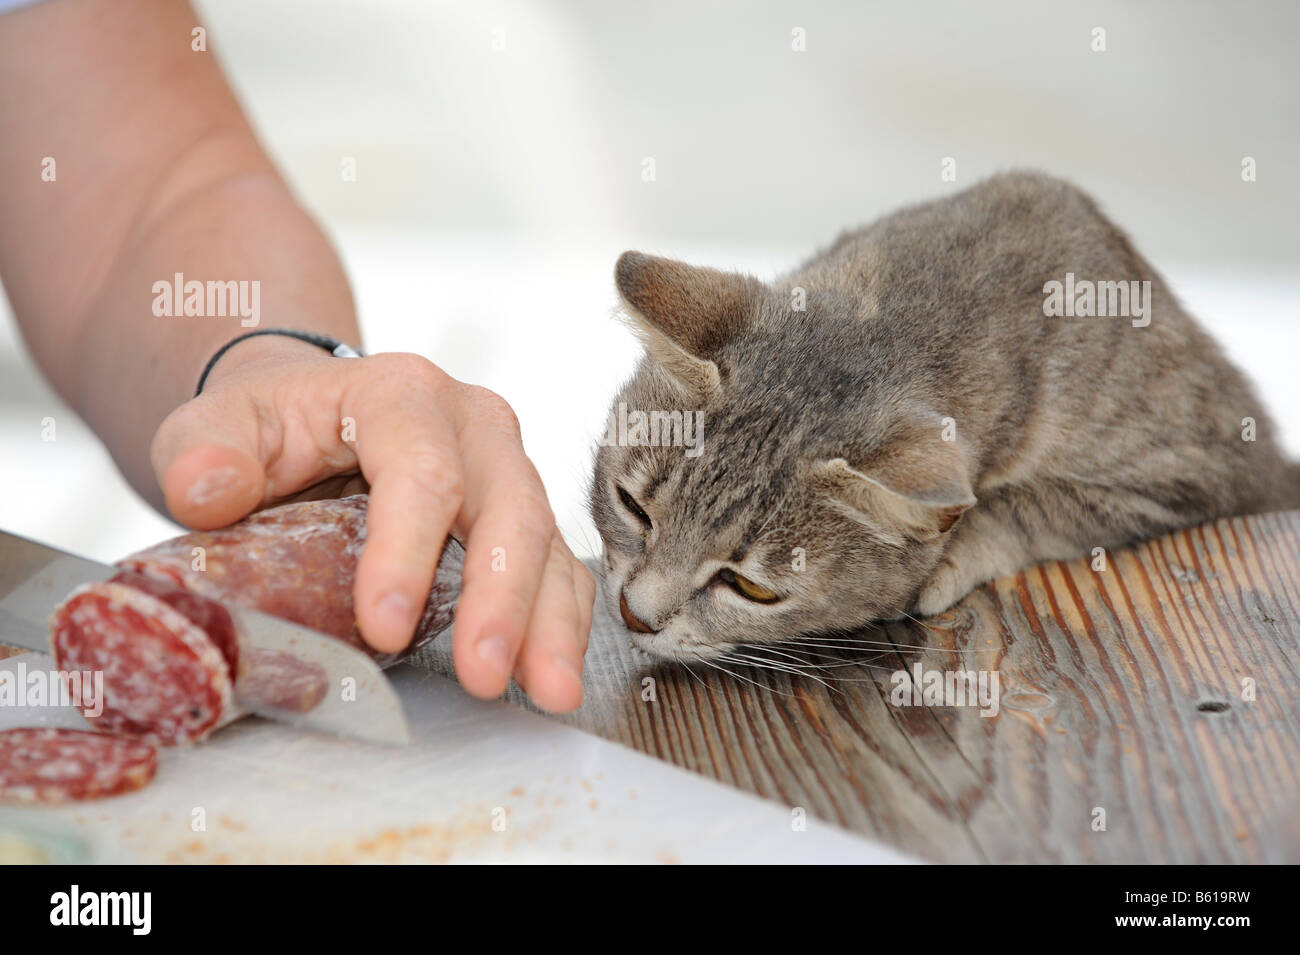 Young grey tabby cat looking on greedily as salami is sliced Stock Photo